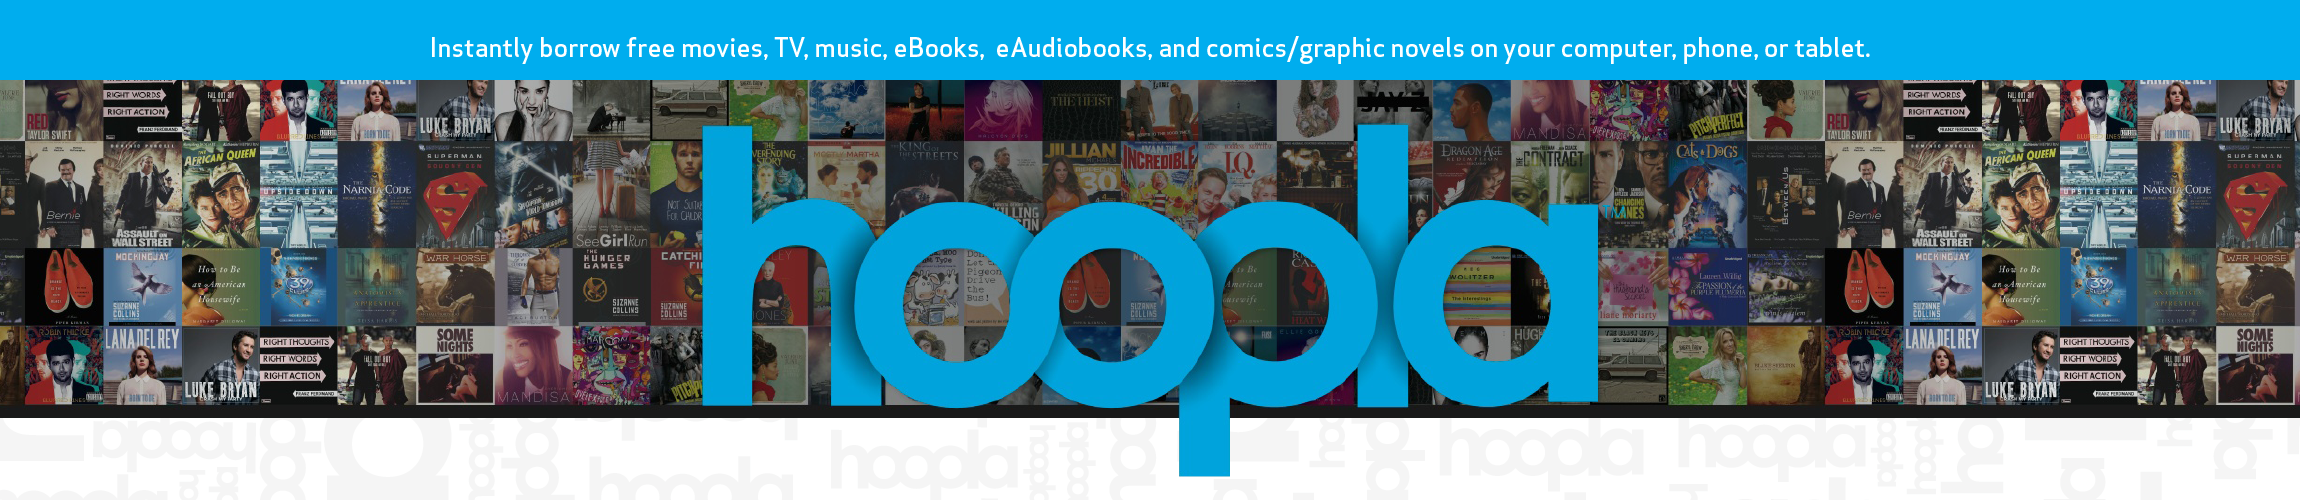 Hoopla Logo in front of a collage of DVD and music covers with text about what you can borrow through Hoopla app